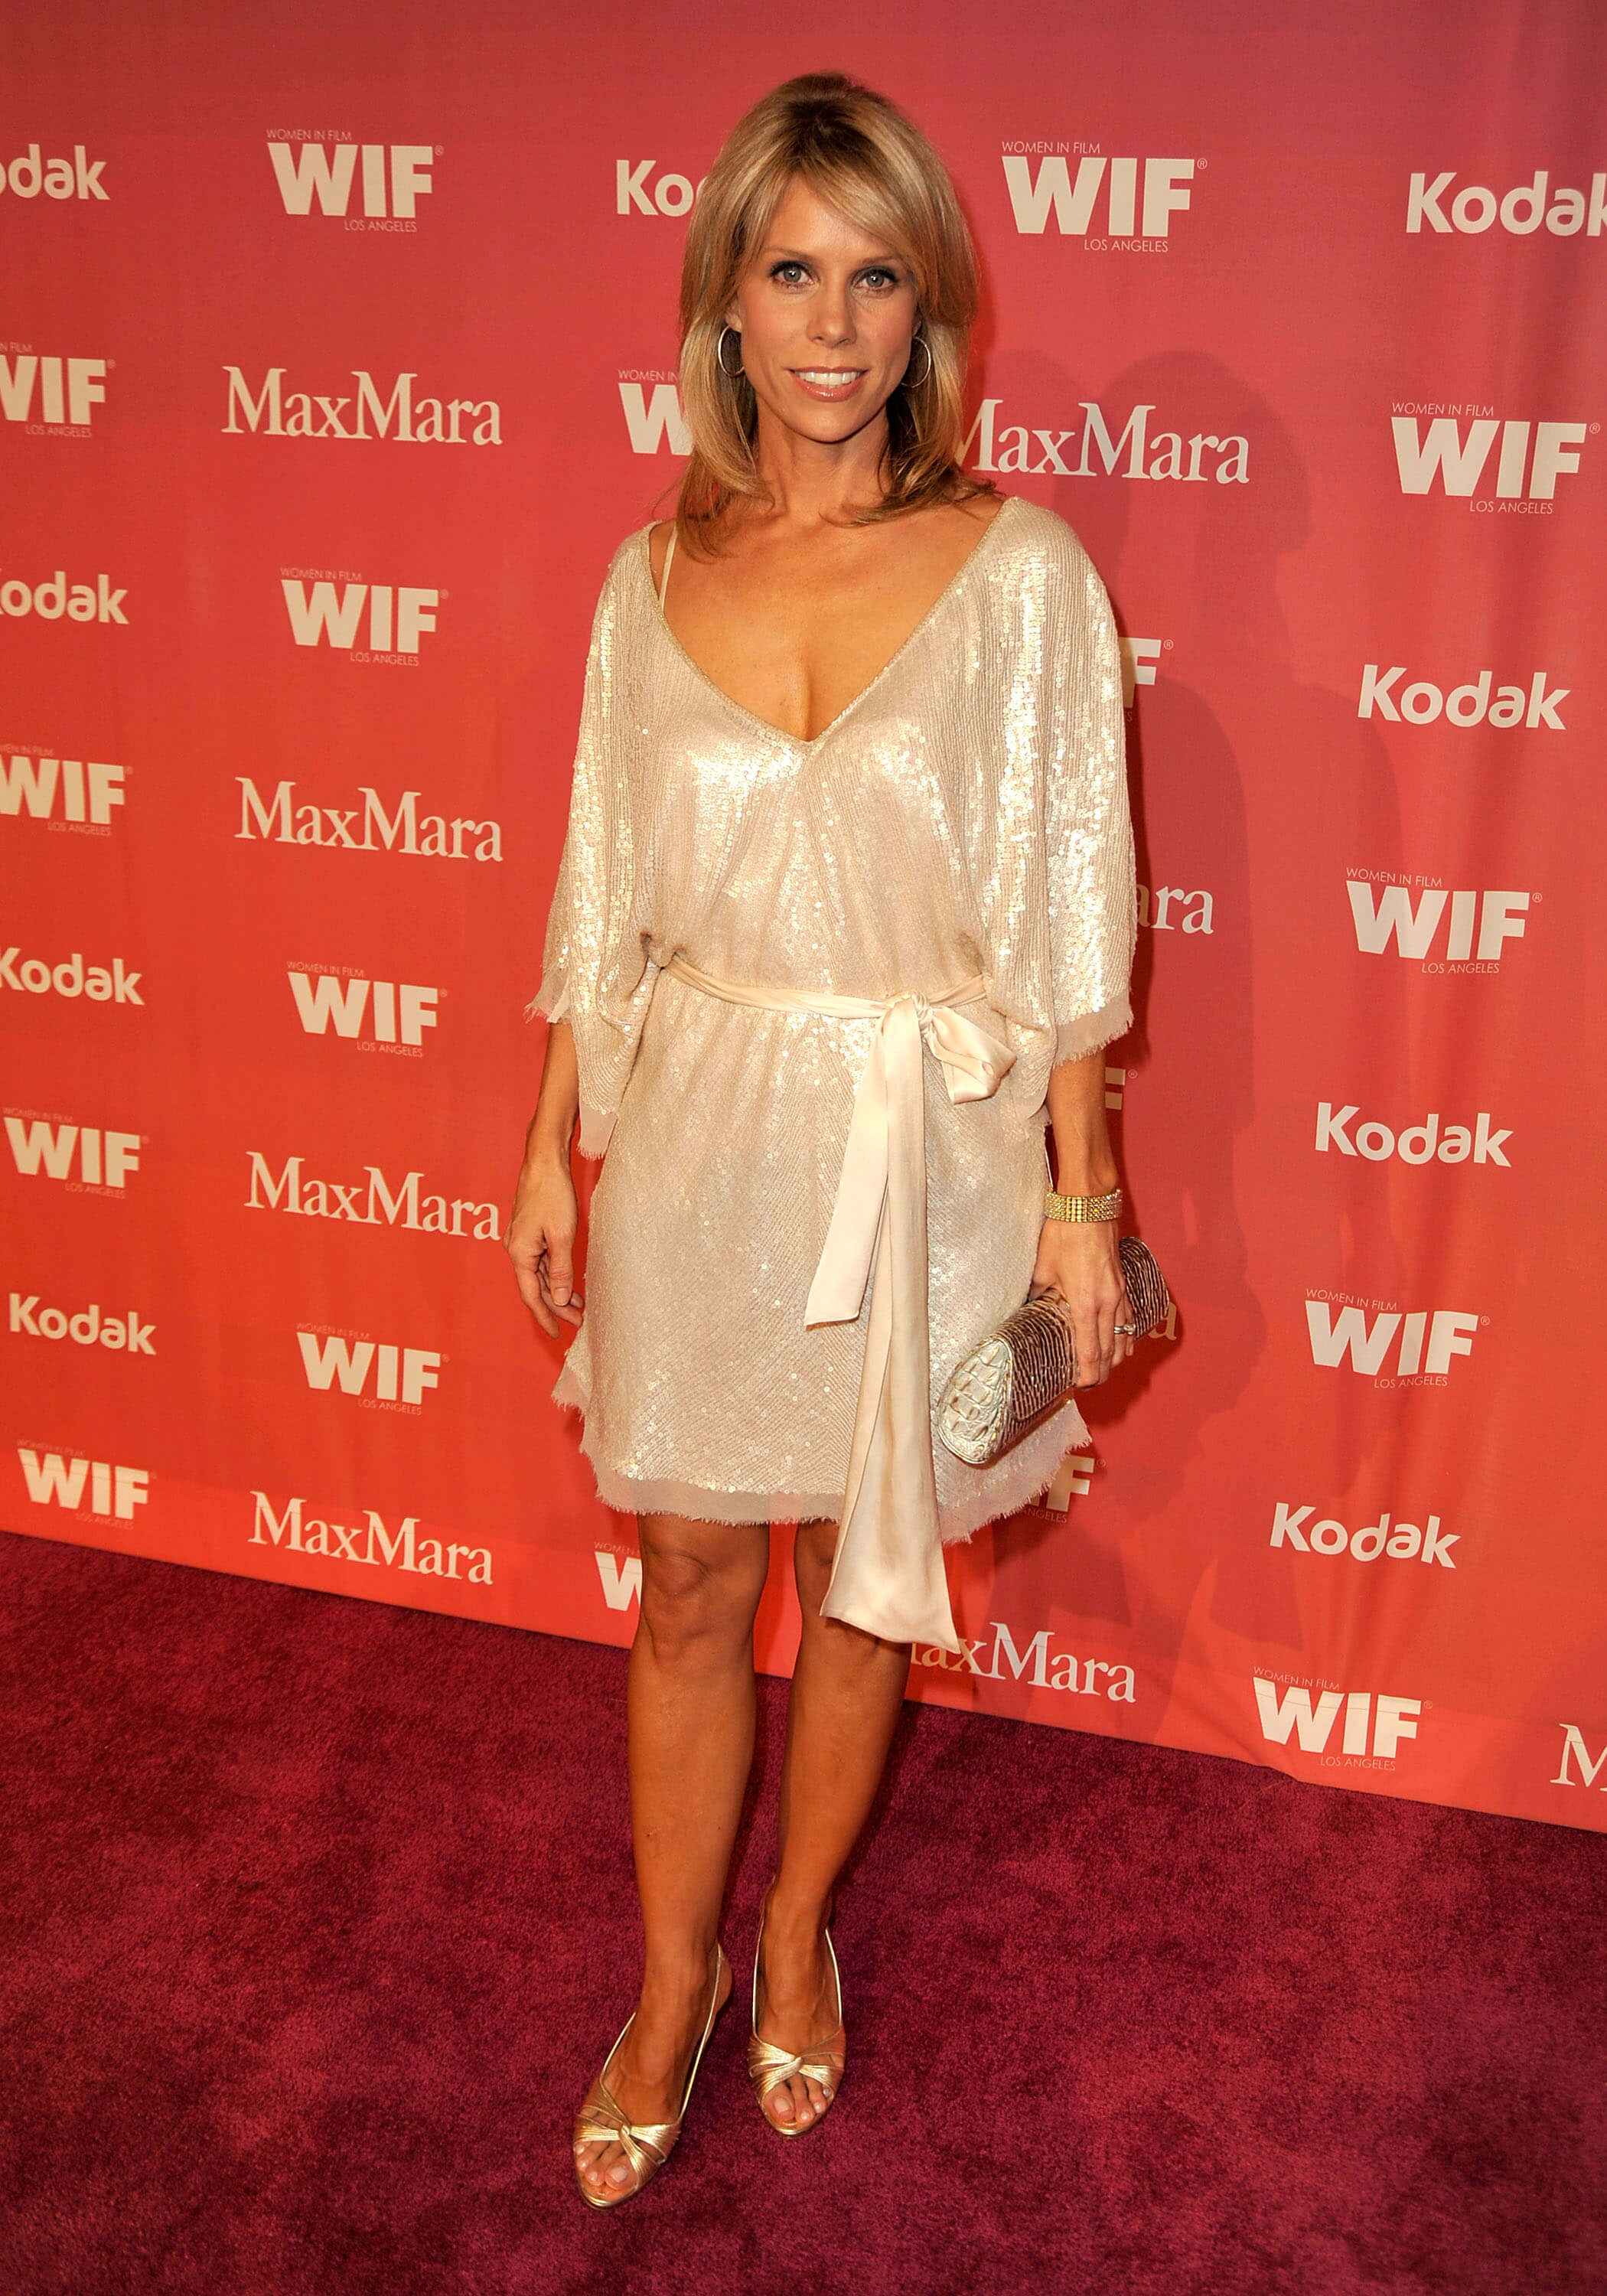 49 Hot Pictures Of Cheryl Hines That Are Simply Gorgeous